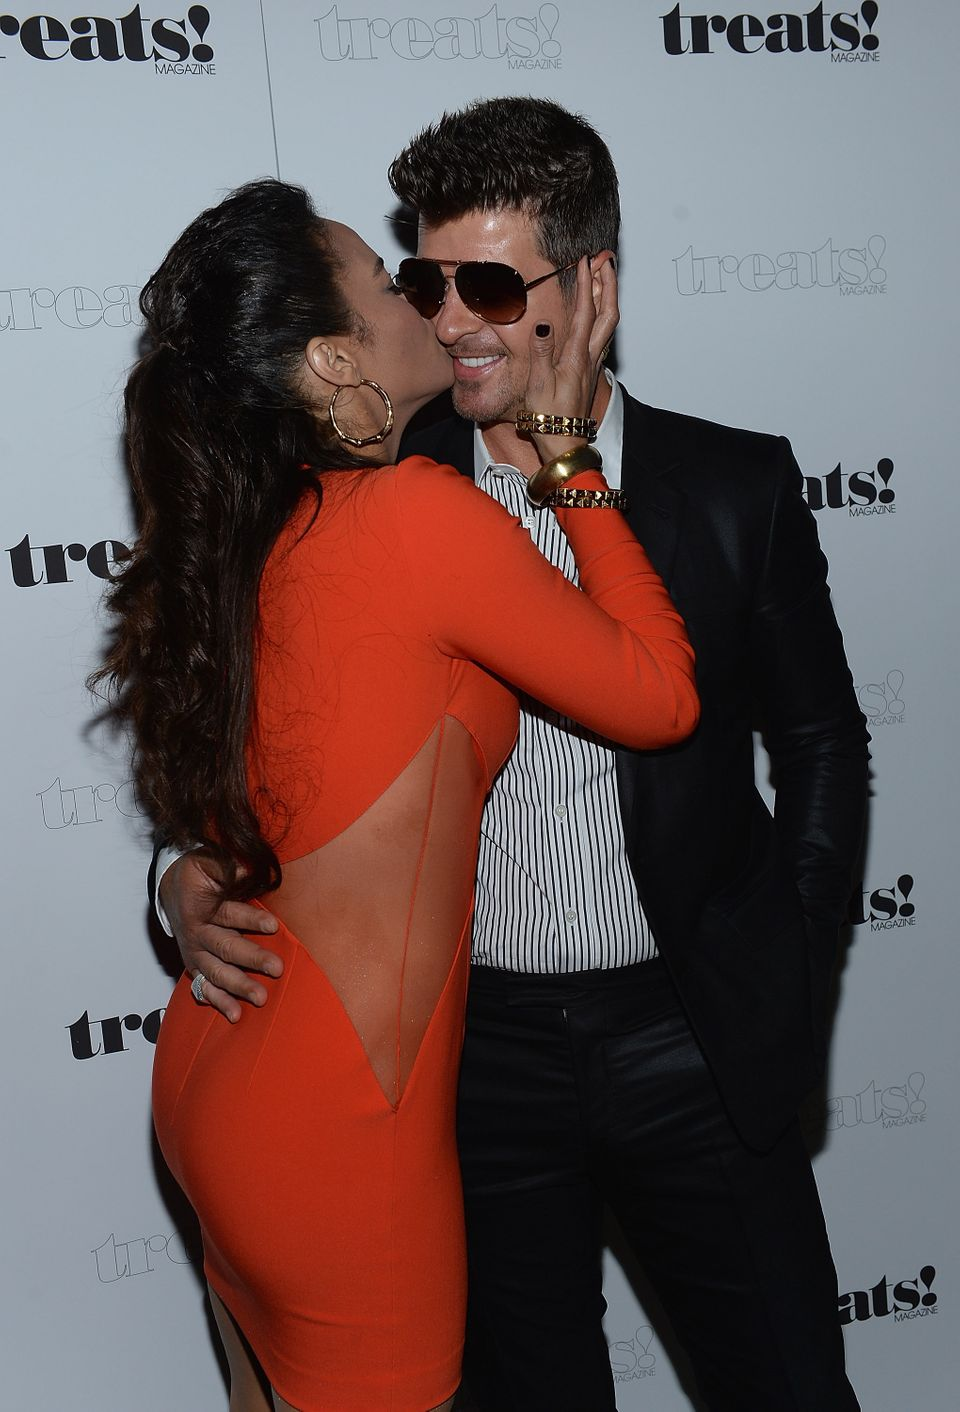 """Rumors surfaced after the VMAs that <a href=""""http://www.huffingtonpost.com/2013/09/05/robin-thicke-paula-patton-cheating-alle"""